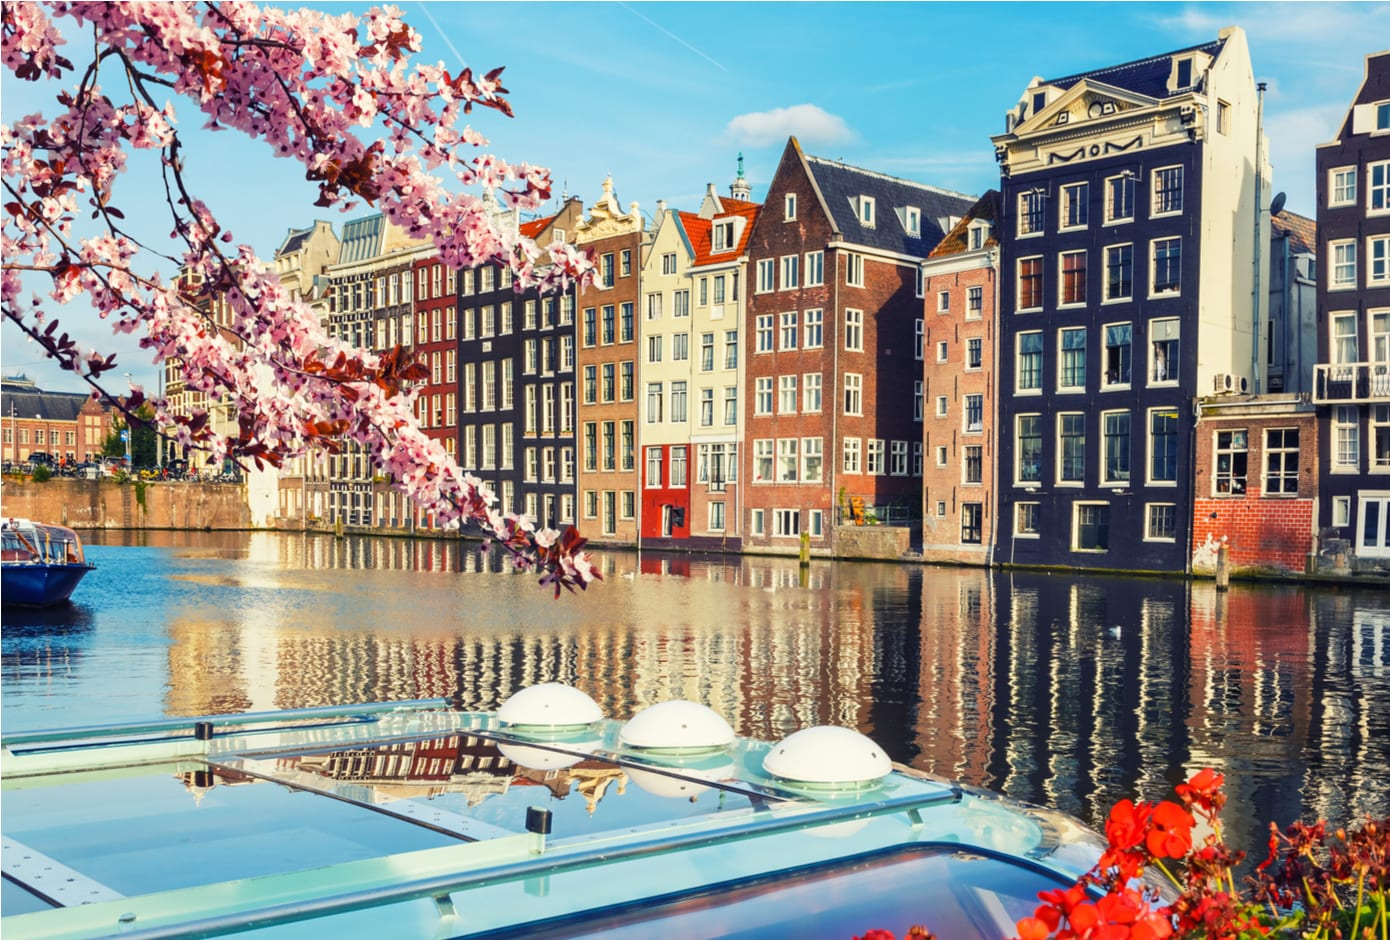 A cherry blossom tree in front of a typical Amsterdam canal lined with houses.